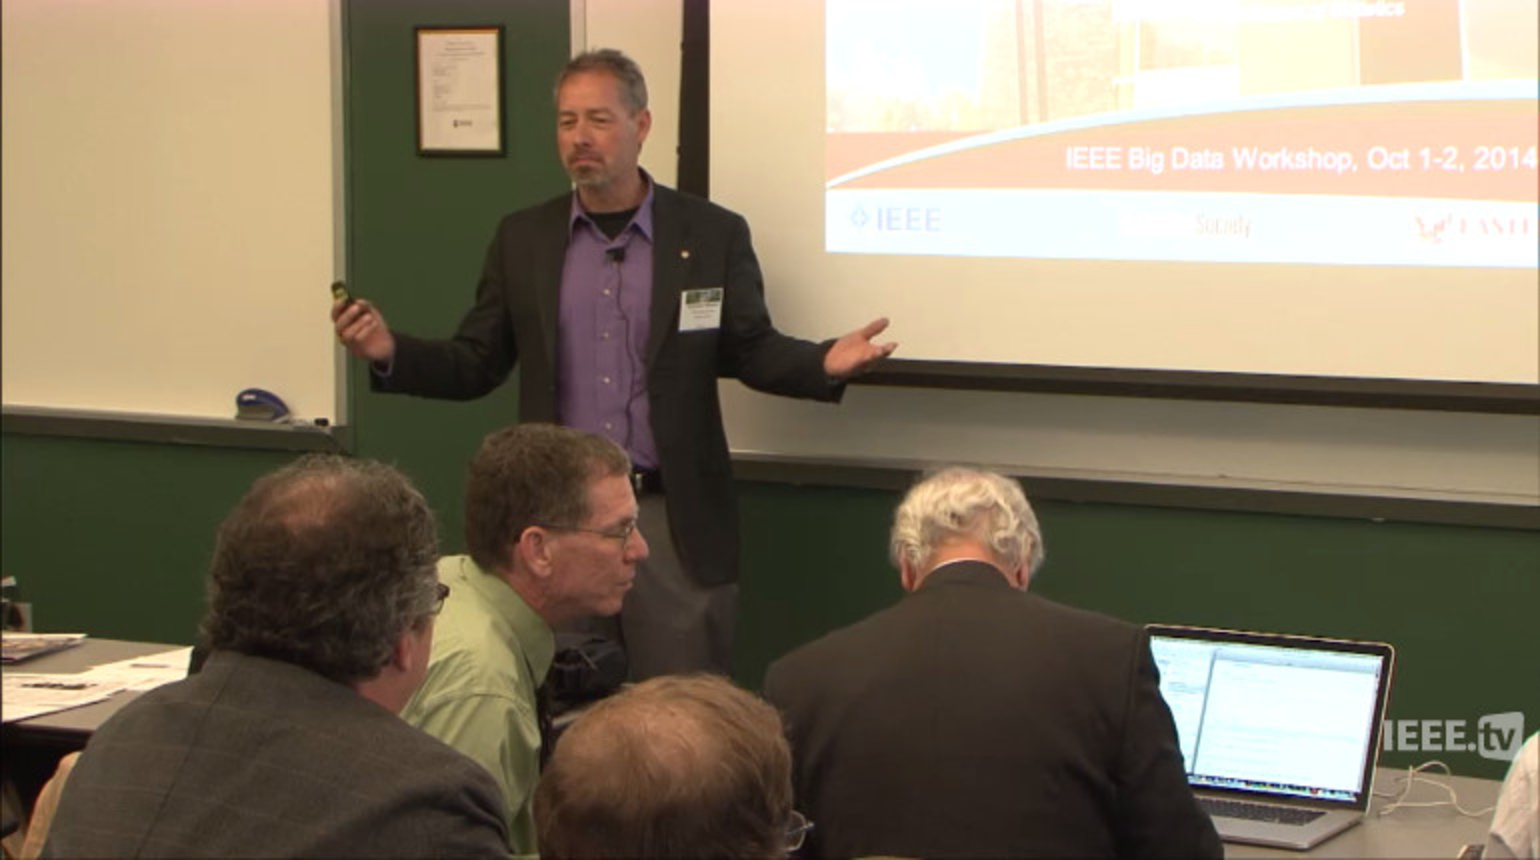 Big Data: Perspectives of the IEEE Reliability Society